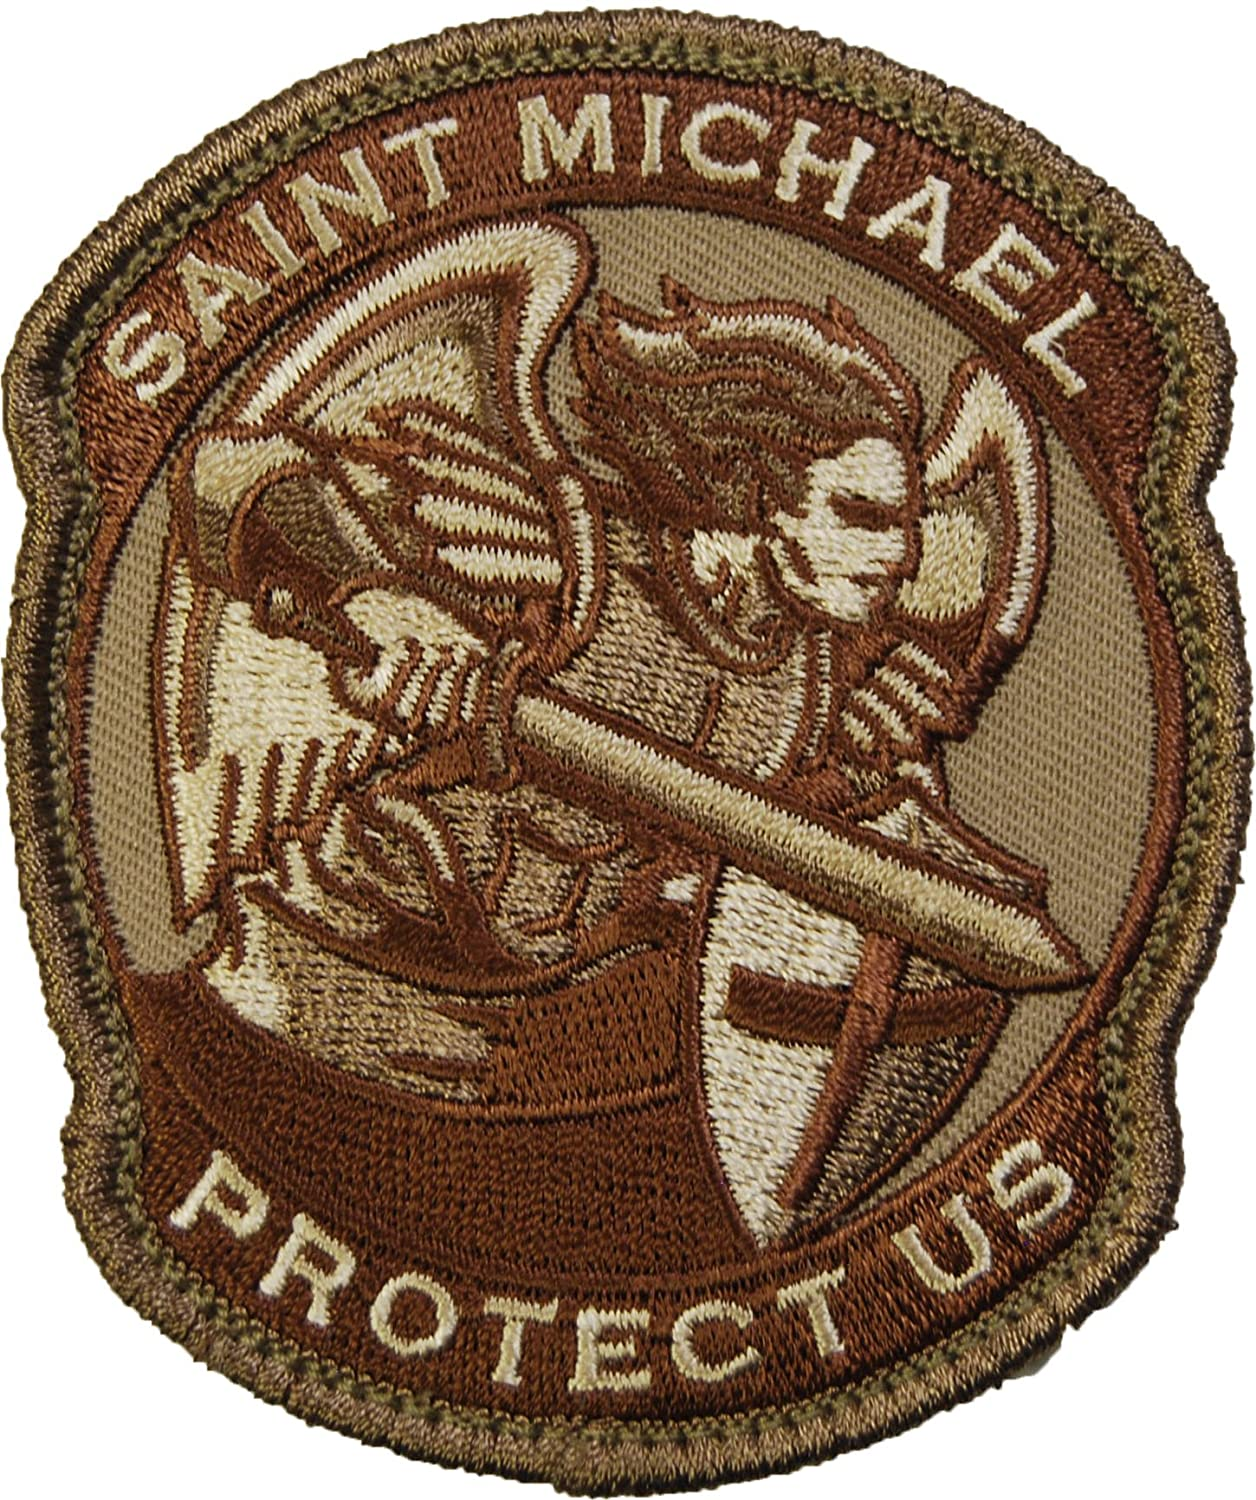 SAINT-M MODERN DESERT MIL SPEC PATCH Mil-Spec Monkey